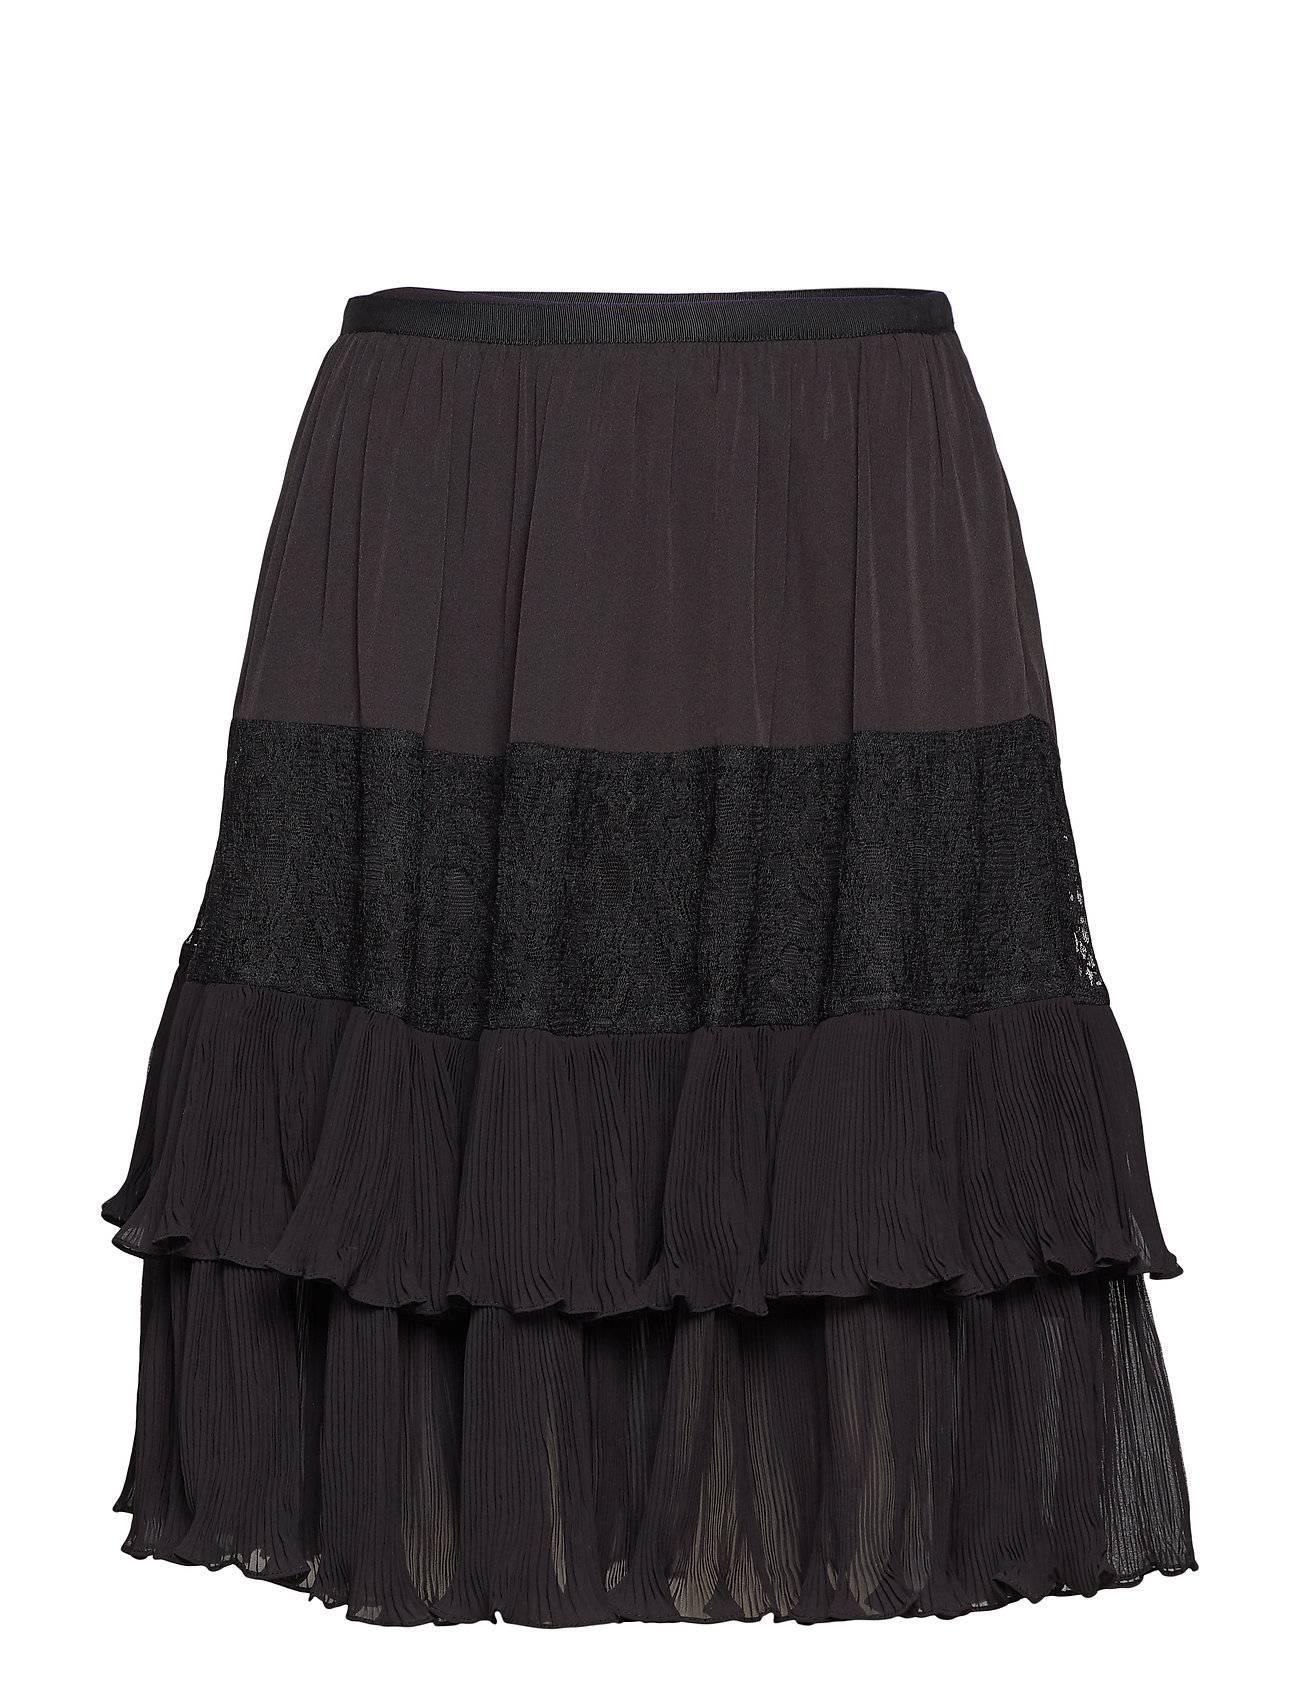 French Connection Clandre Vintage Lace Mix Skirt